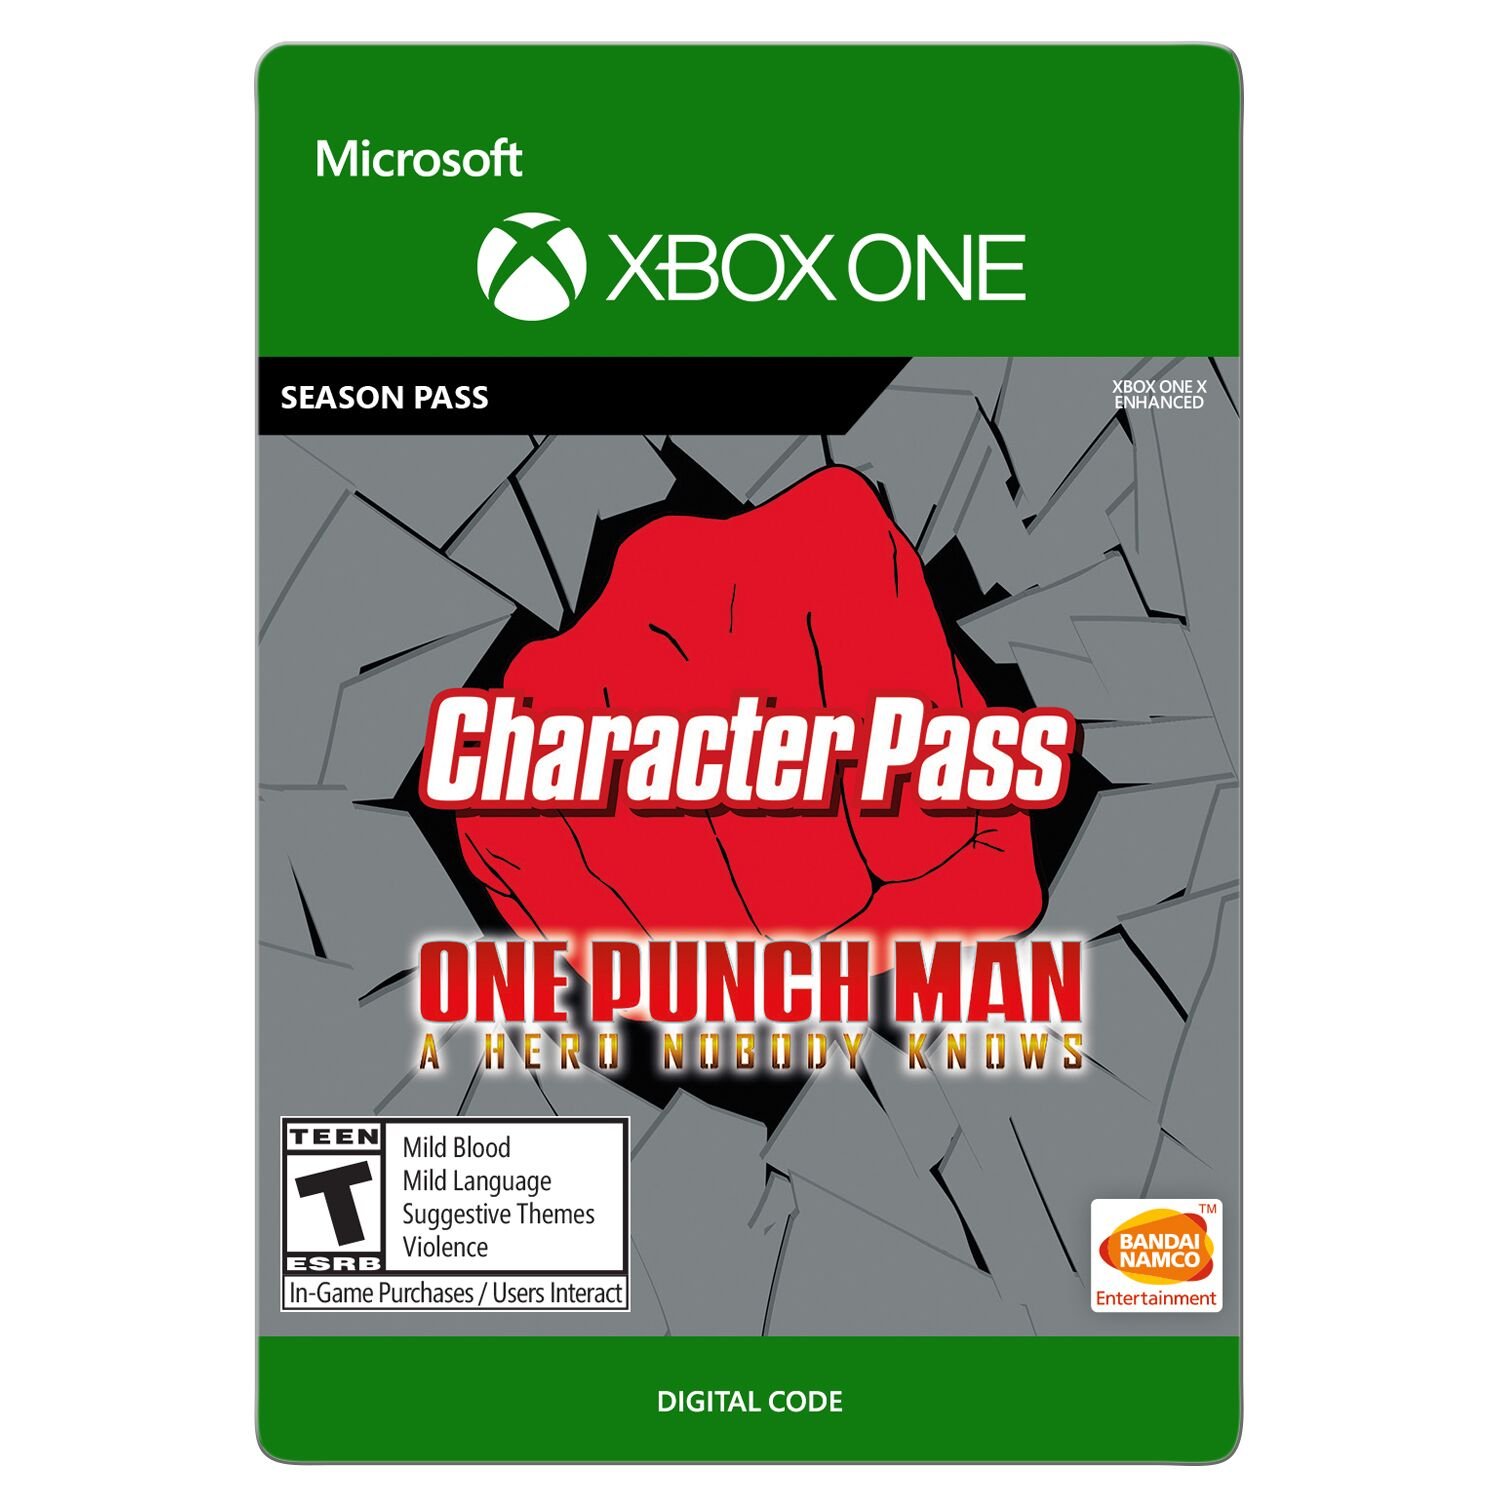 one punch man online game moved roblox One Punch Man A Hero Nobody Knows Character Pass Bandai Namco Xbox Digital Download Walmart Com Walmart Com